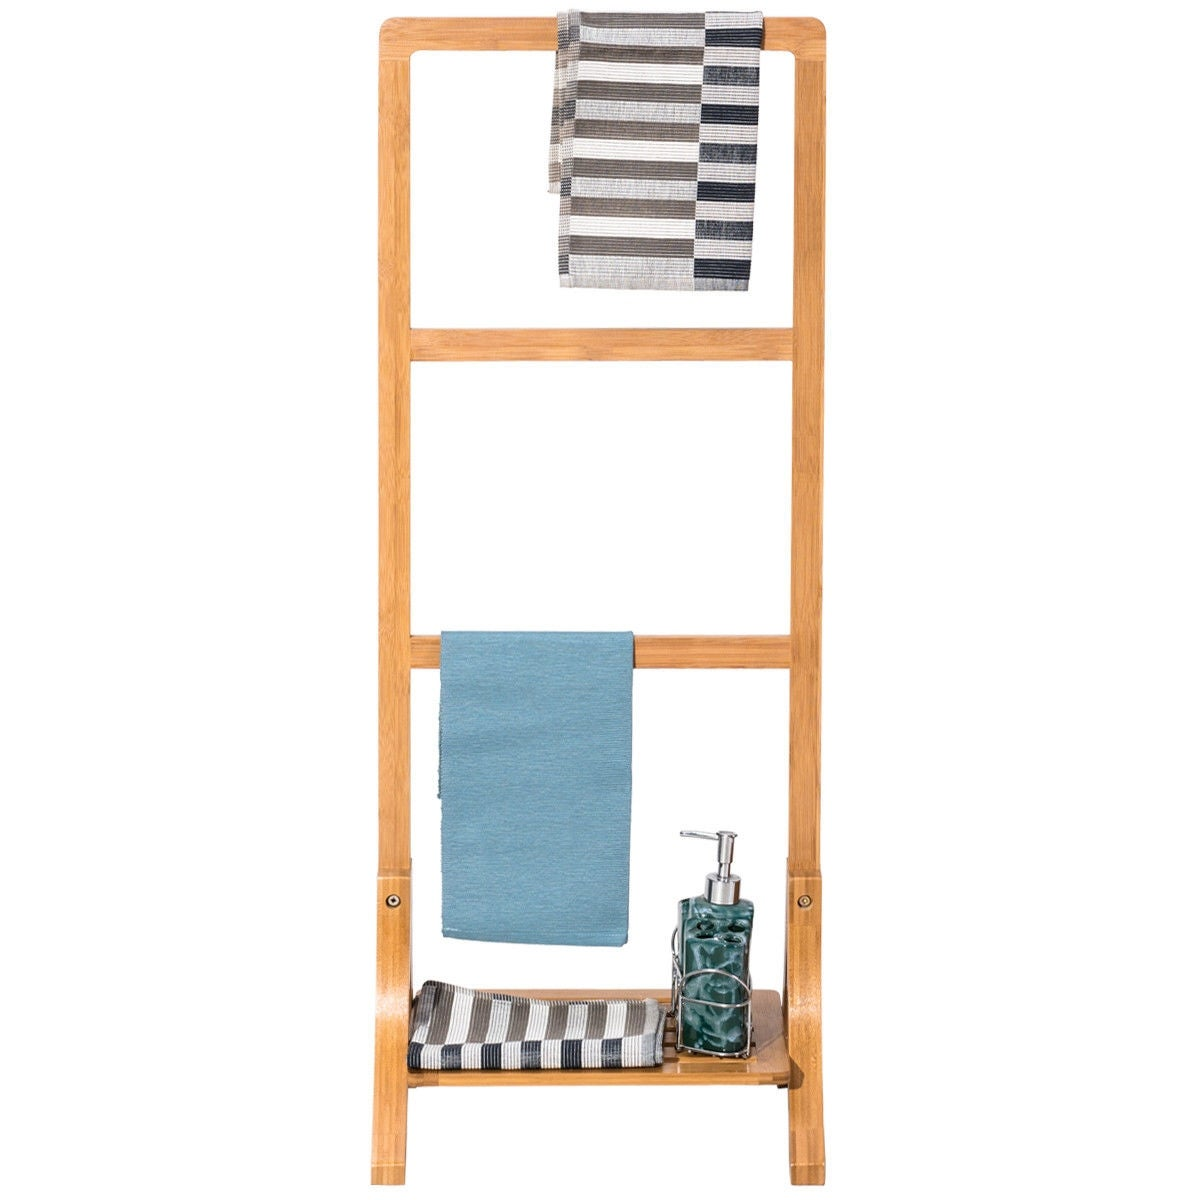 mounted hotel bath wall paper rail racks towel heater wood holder bathroom ideas outdoor bathrooms small holders com rack for stand storage decorative shelf unique